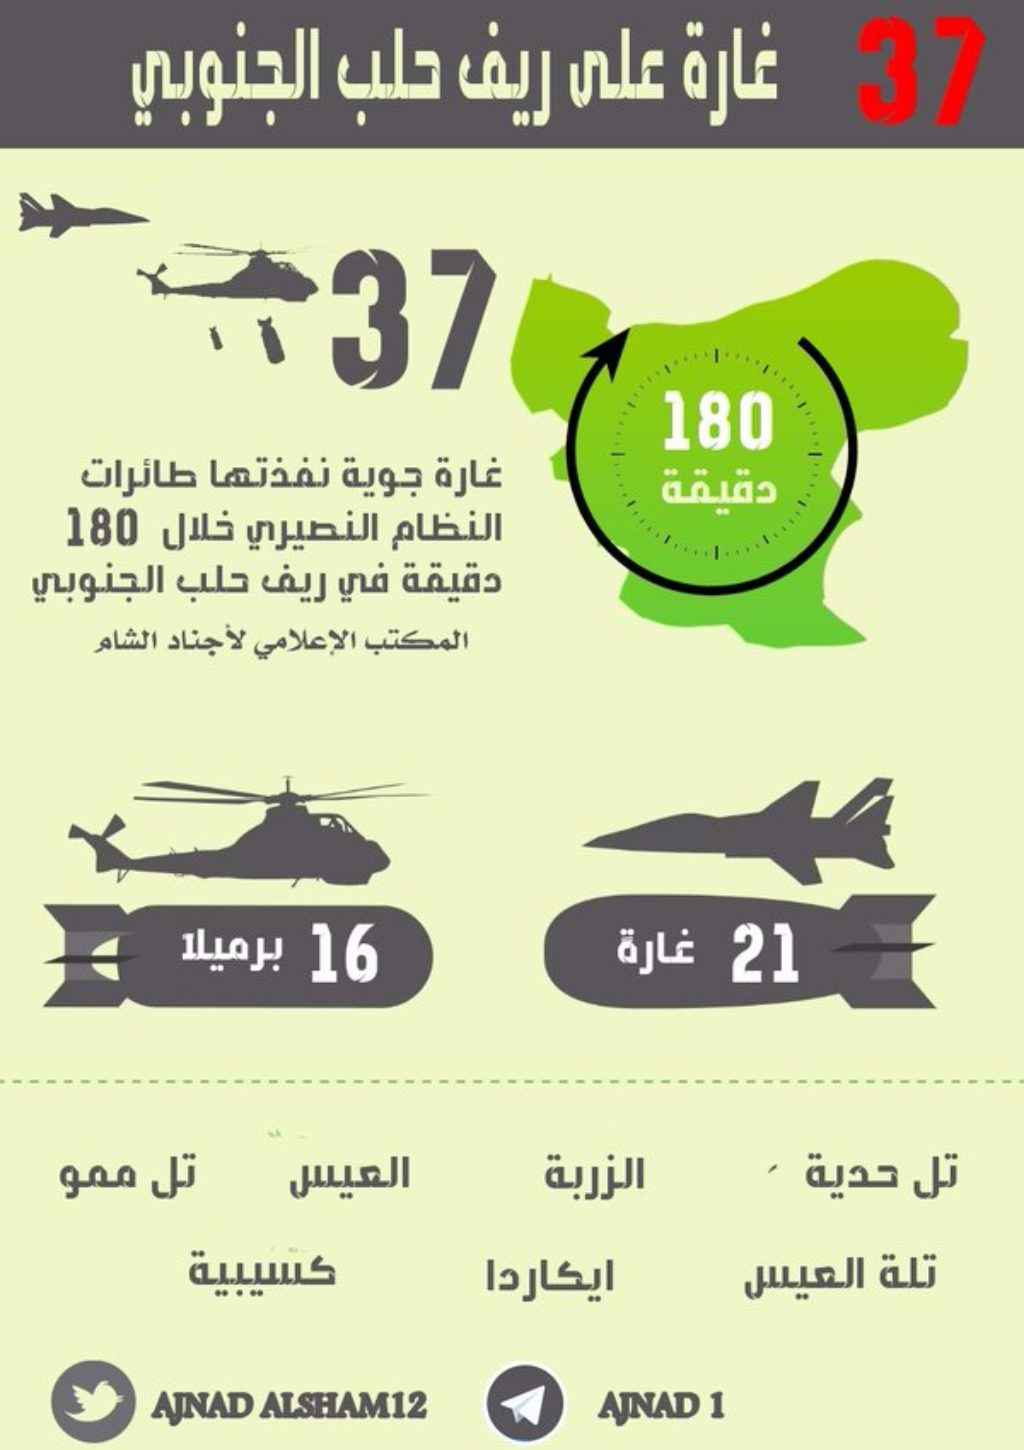 16-05-05 Ajnad al Sham infographic on bombings